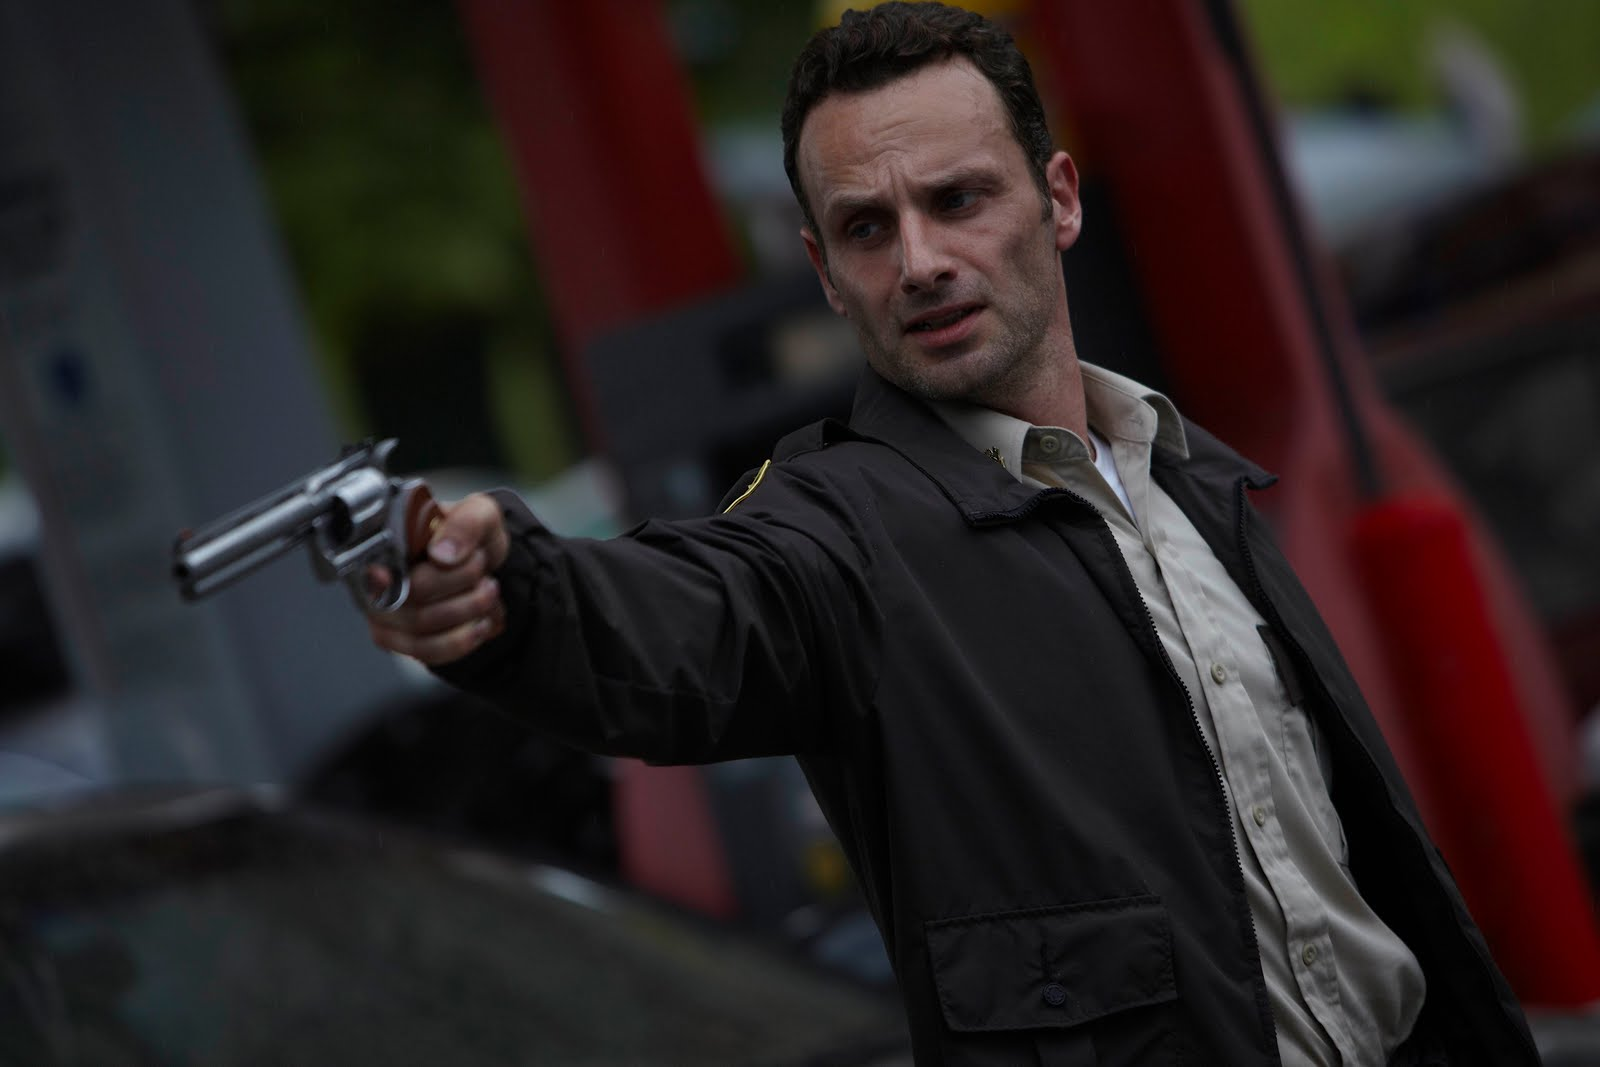 The Walking Dead - Andrew Lincoln as Rick Grimes ...